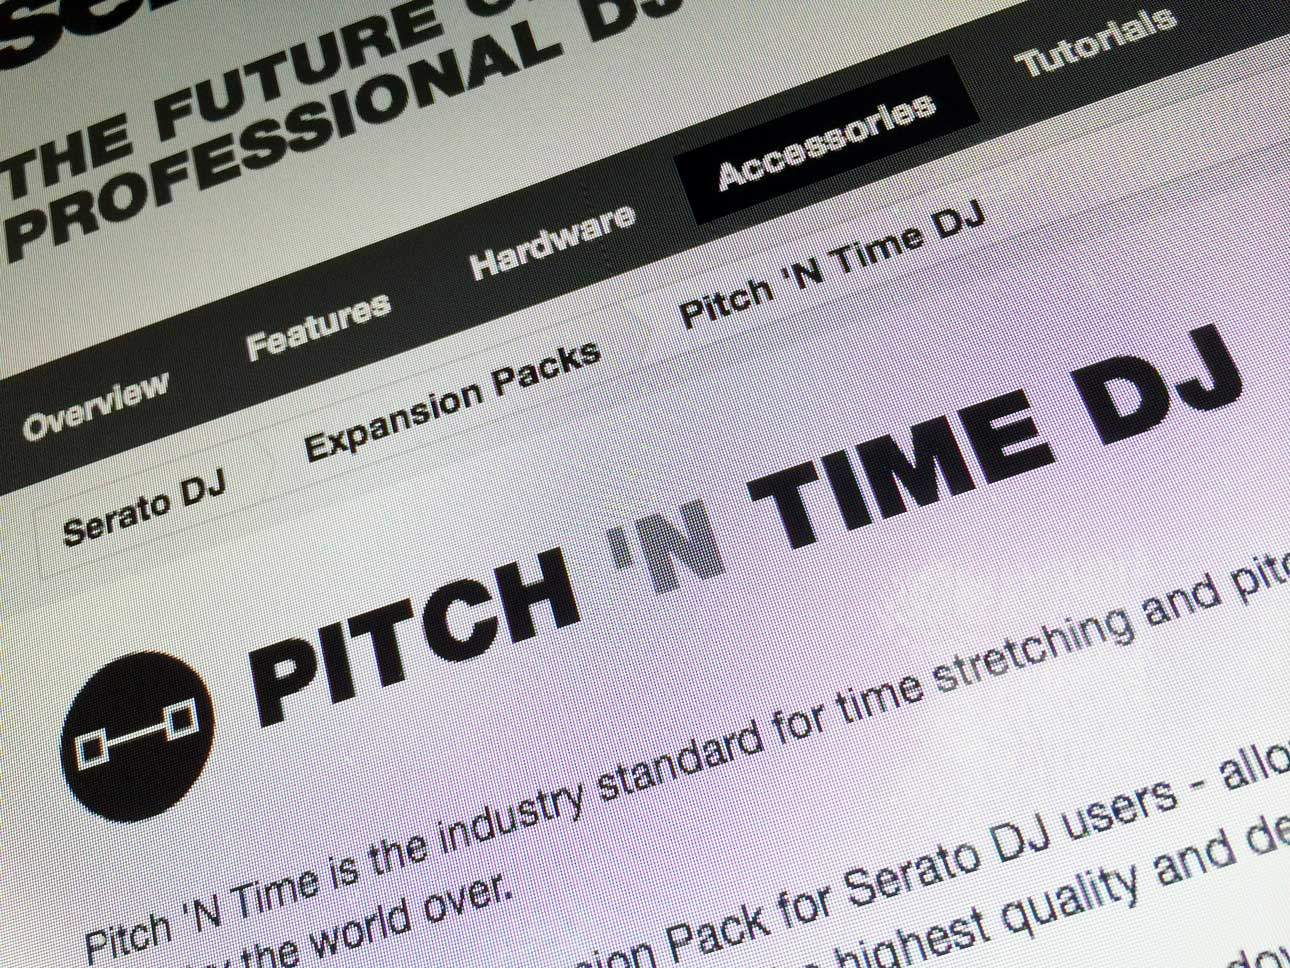 Serato Pitch 'N Time DJ Review